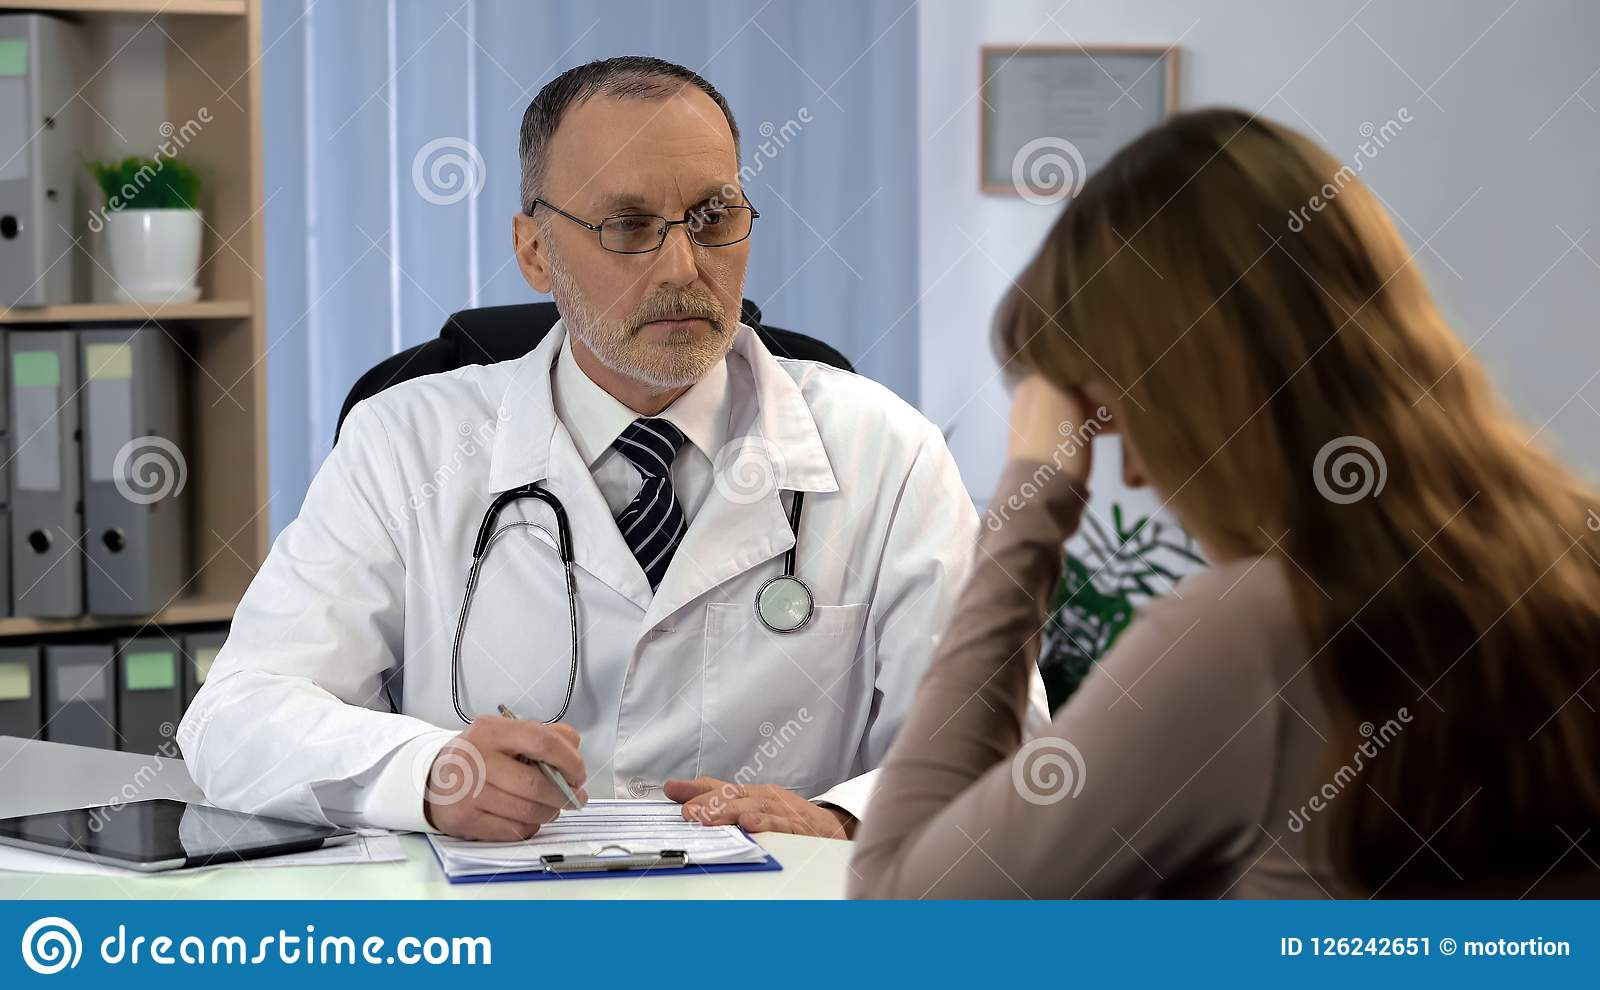 Oncologist informing woman about incurable disease, patient feels depressed